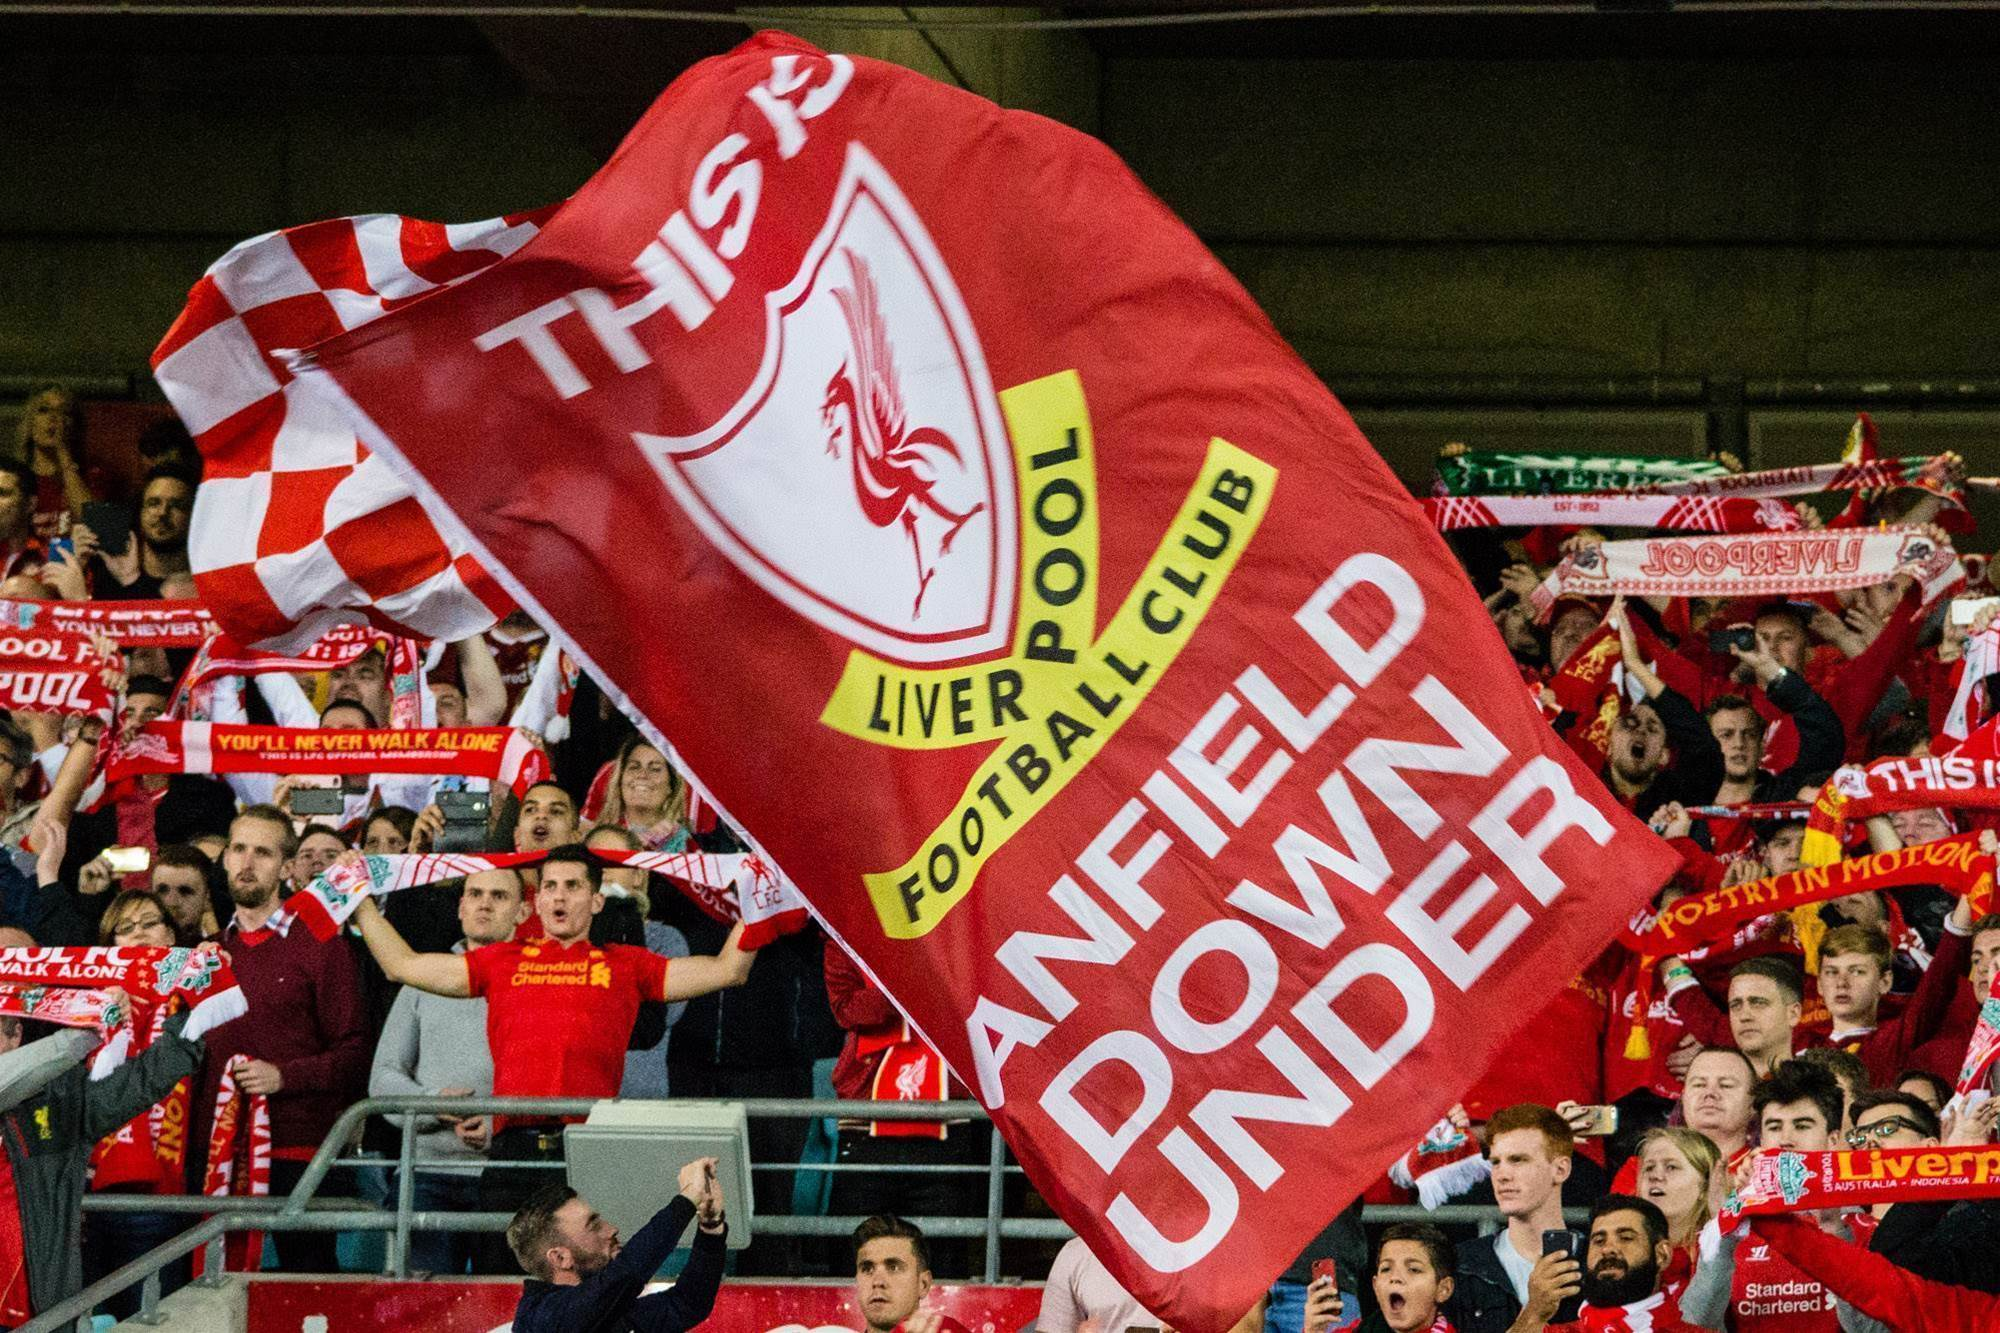 Gallery: Among the Liverpool fans in Sydney